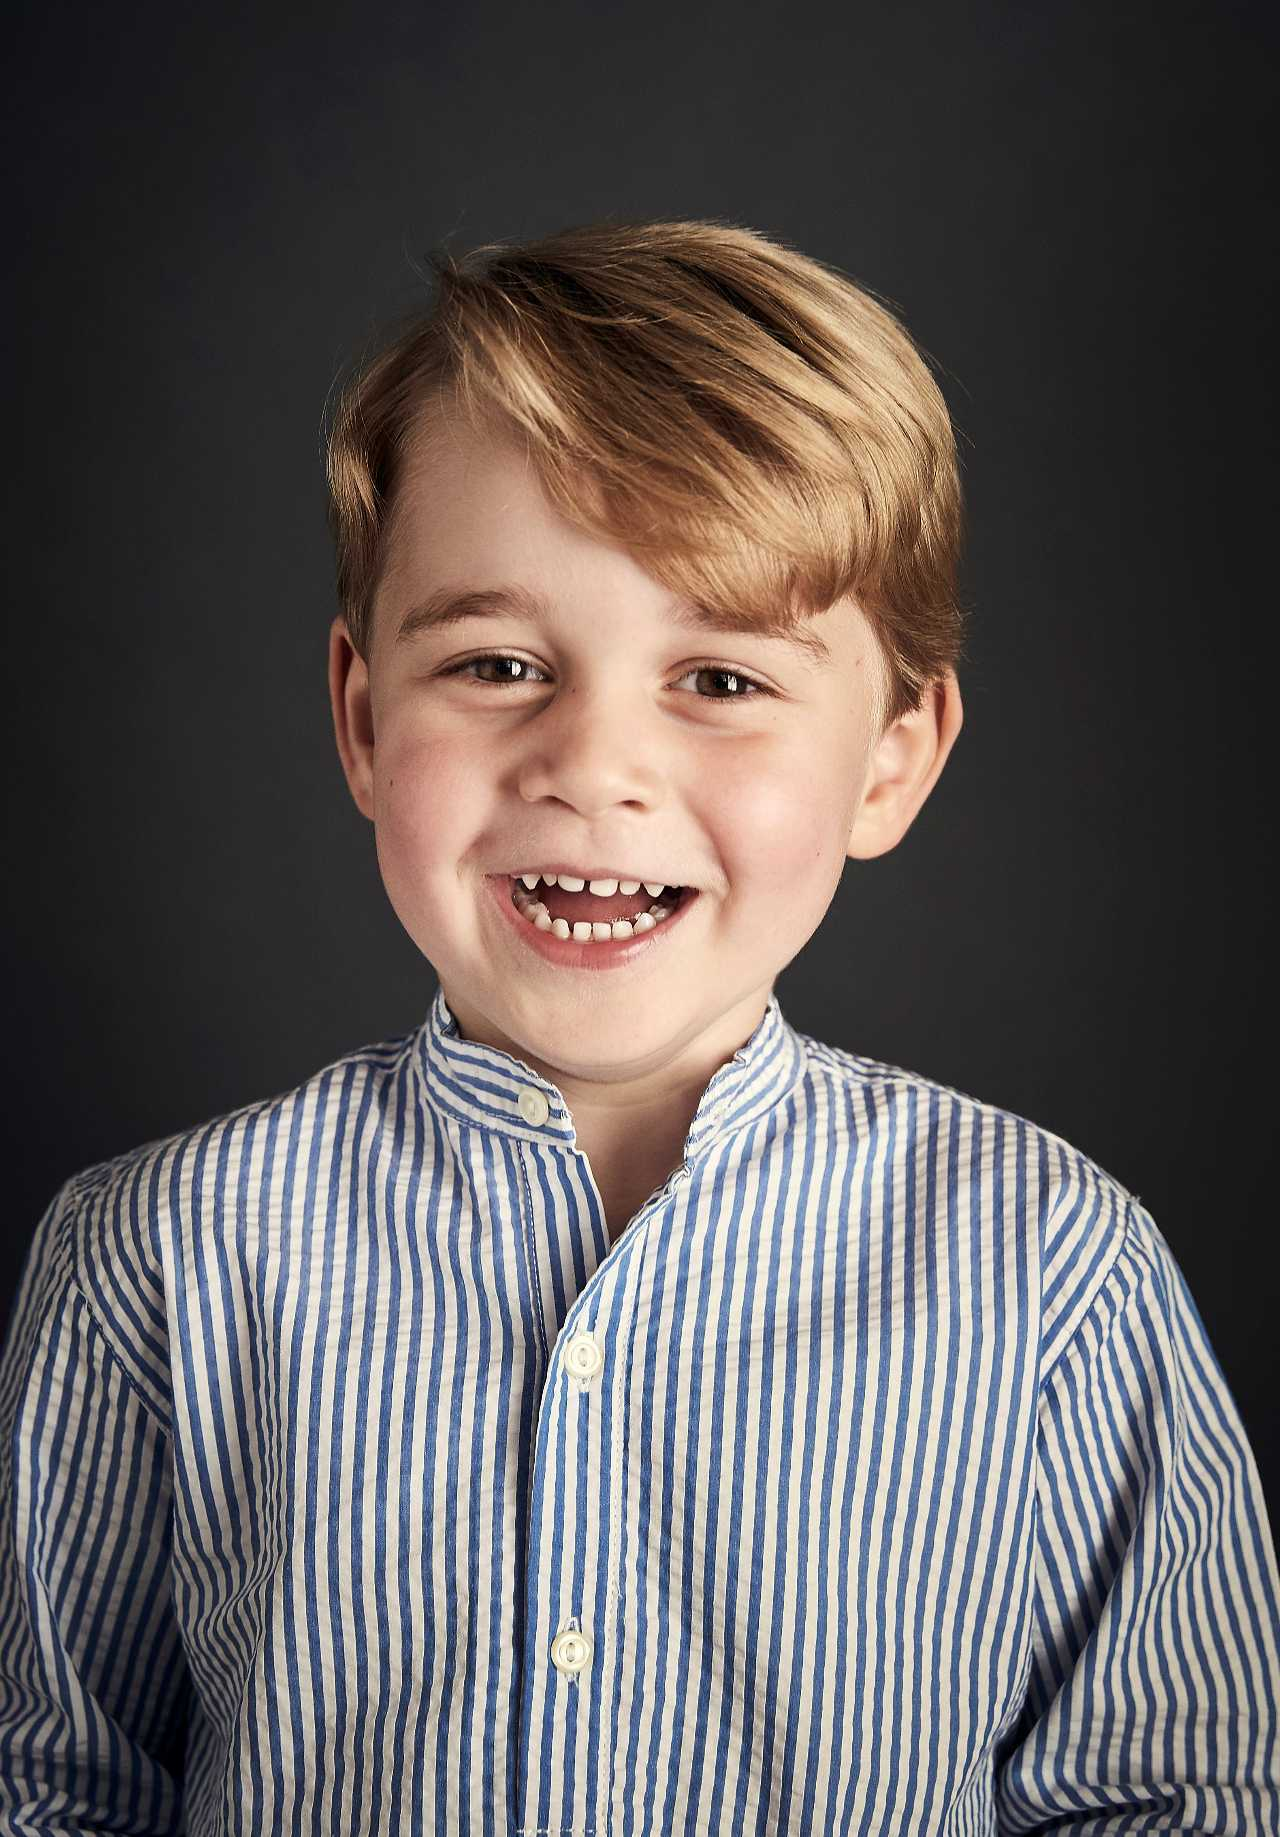 prince-george-gettyImages-820429368